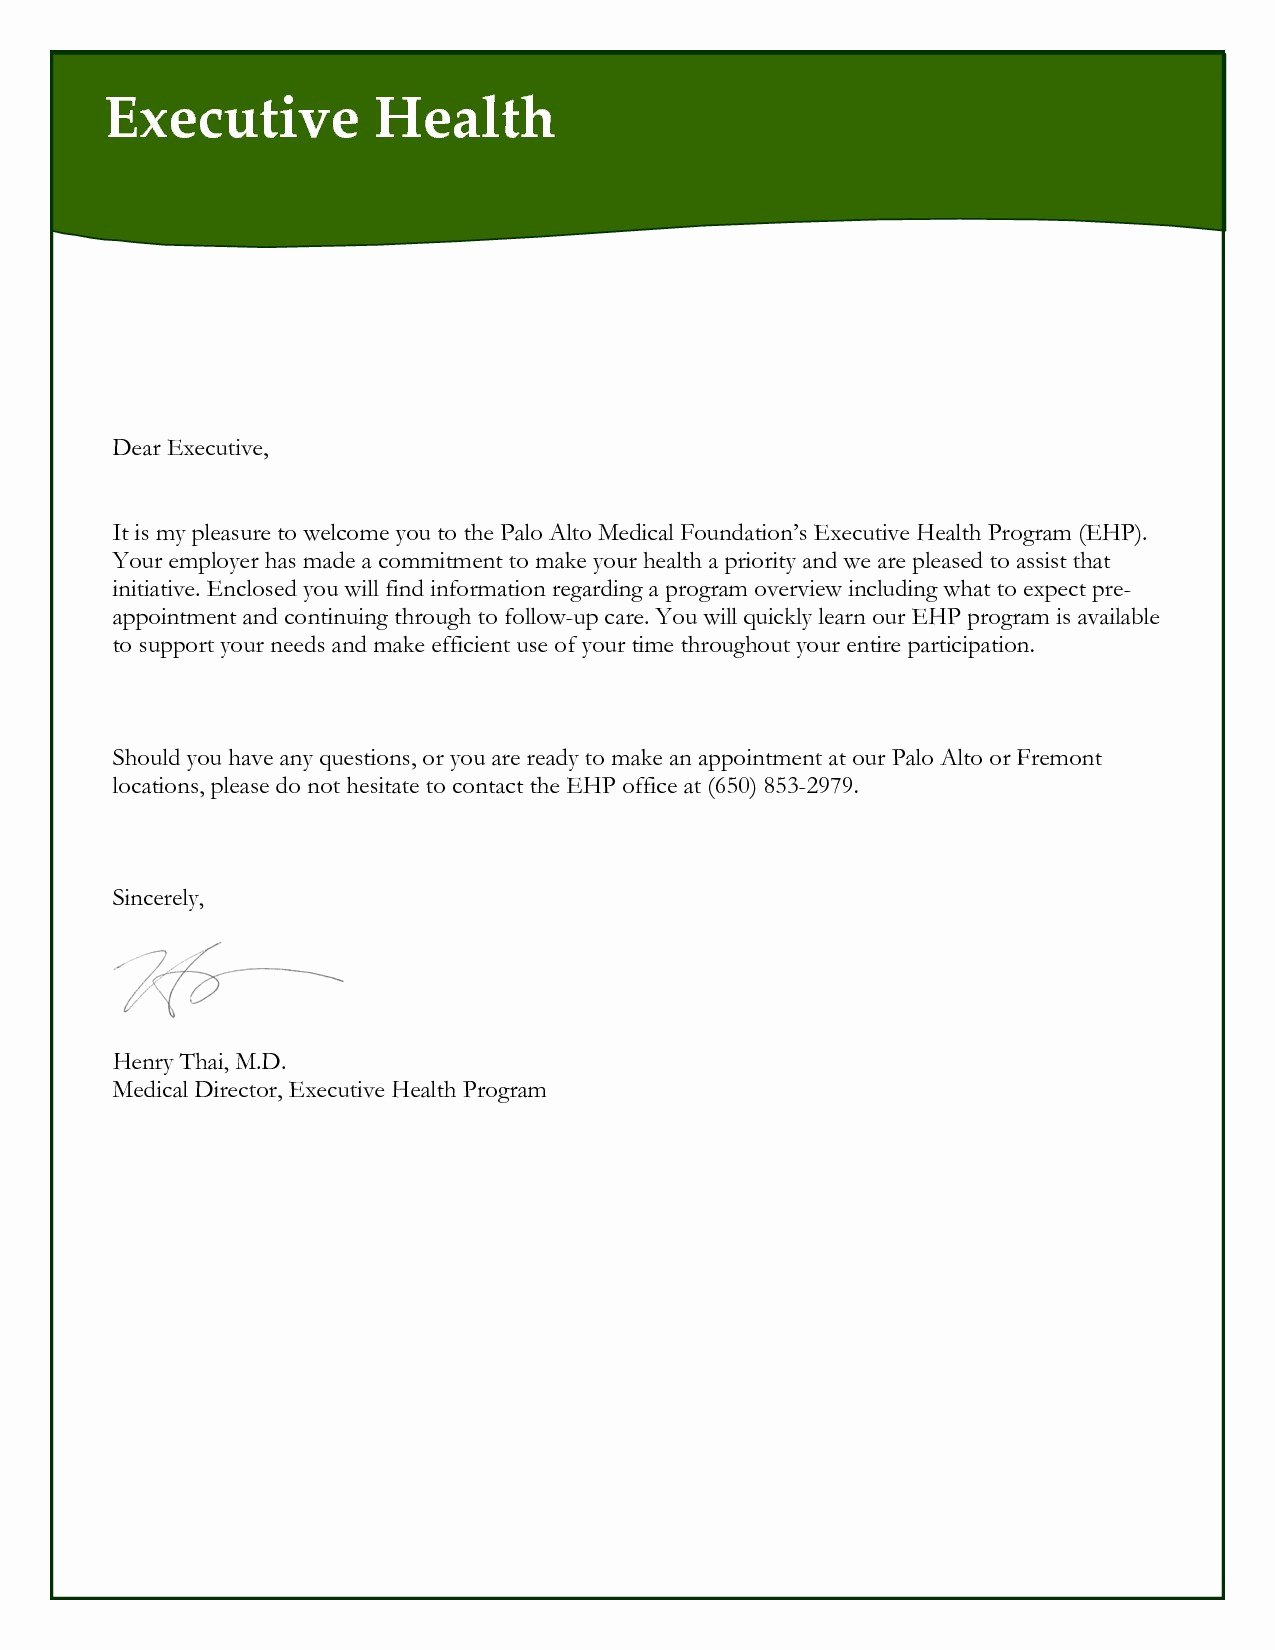 Appointment Reminder Letter Template Medical Beautiful Appointment Reminder Letter Template Medical Examples